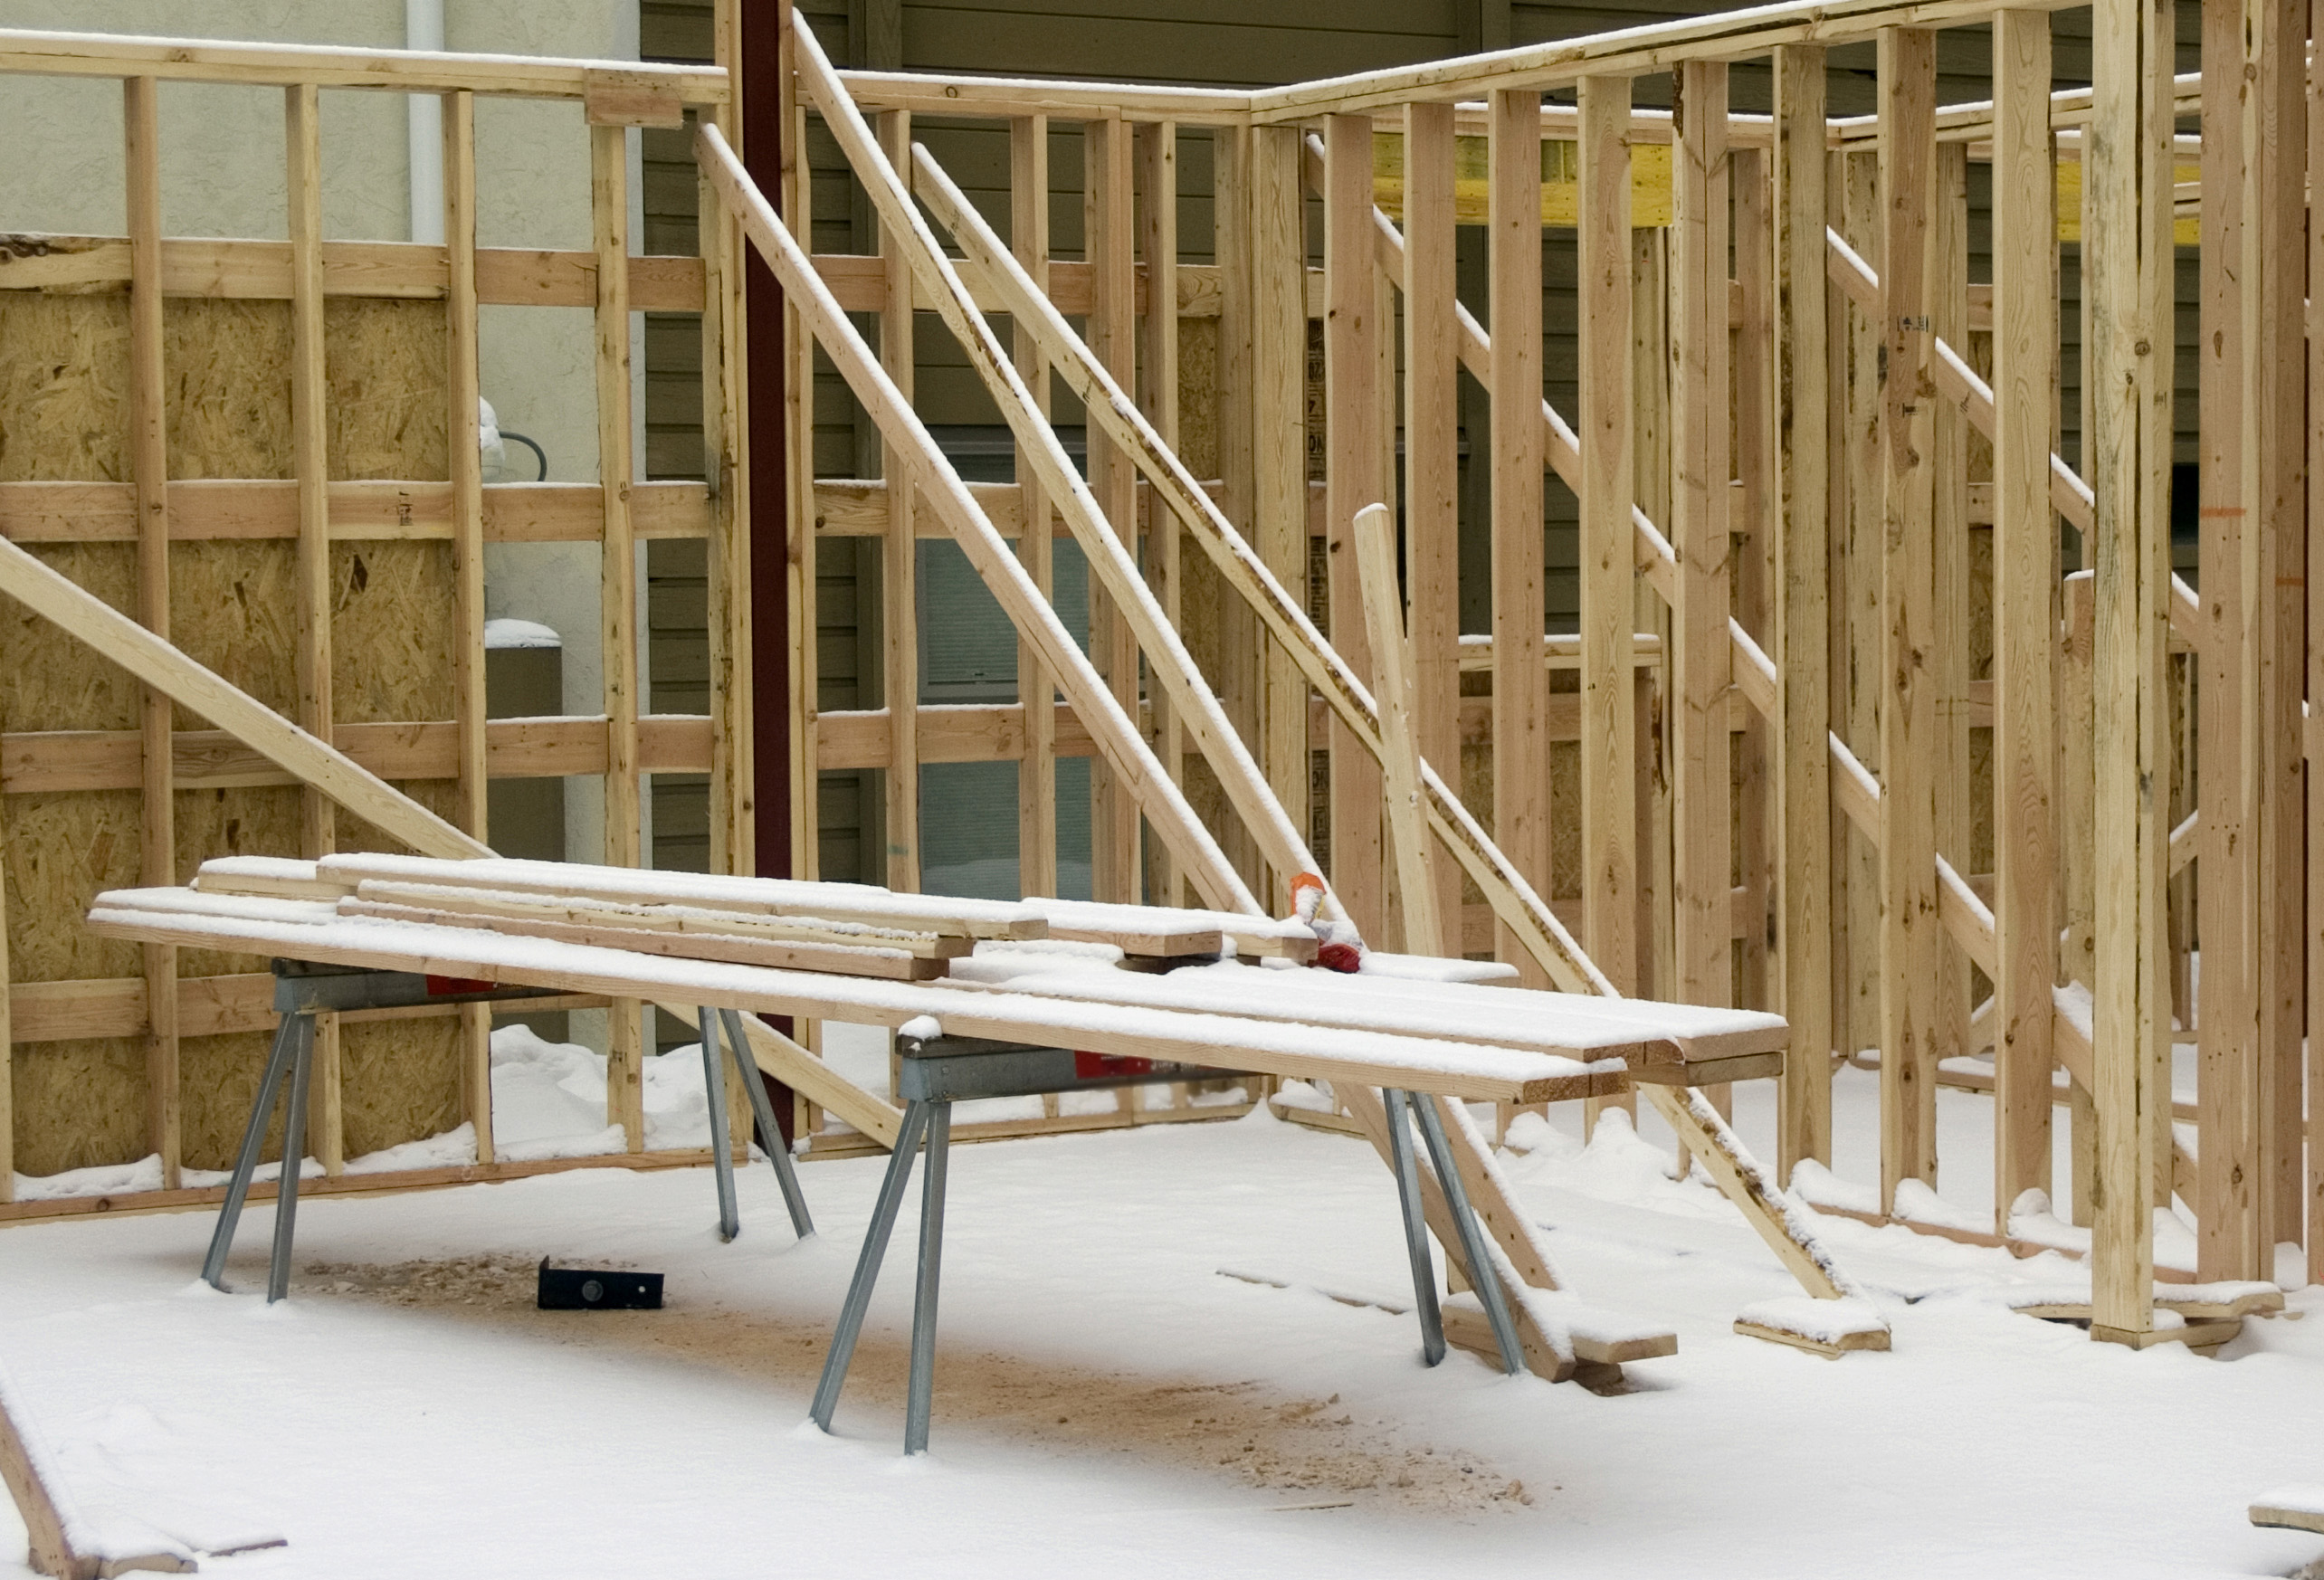 Winter Safety for Construction Sites